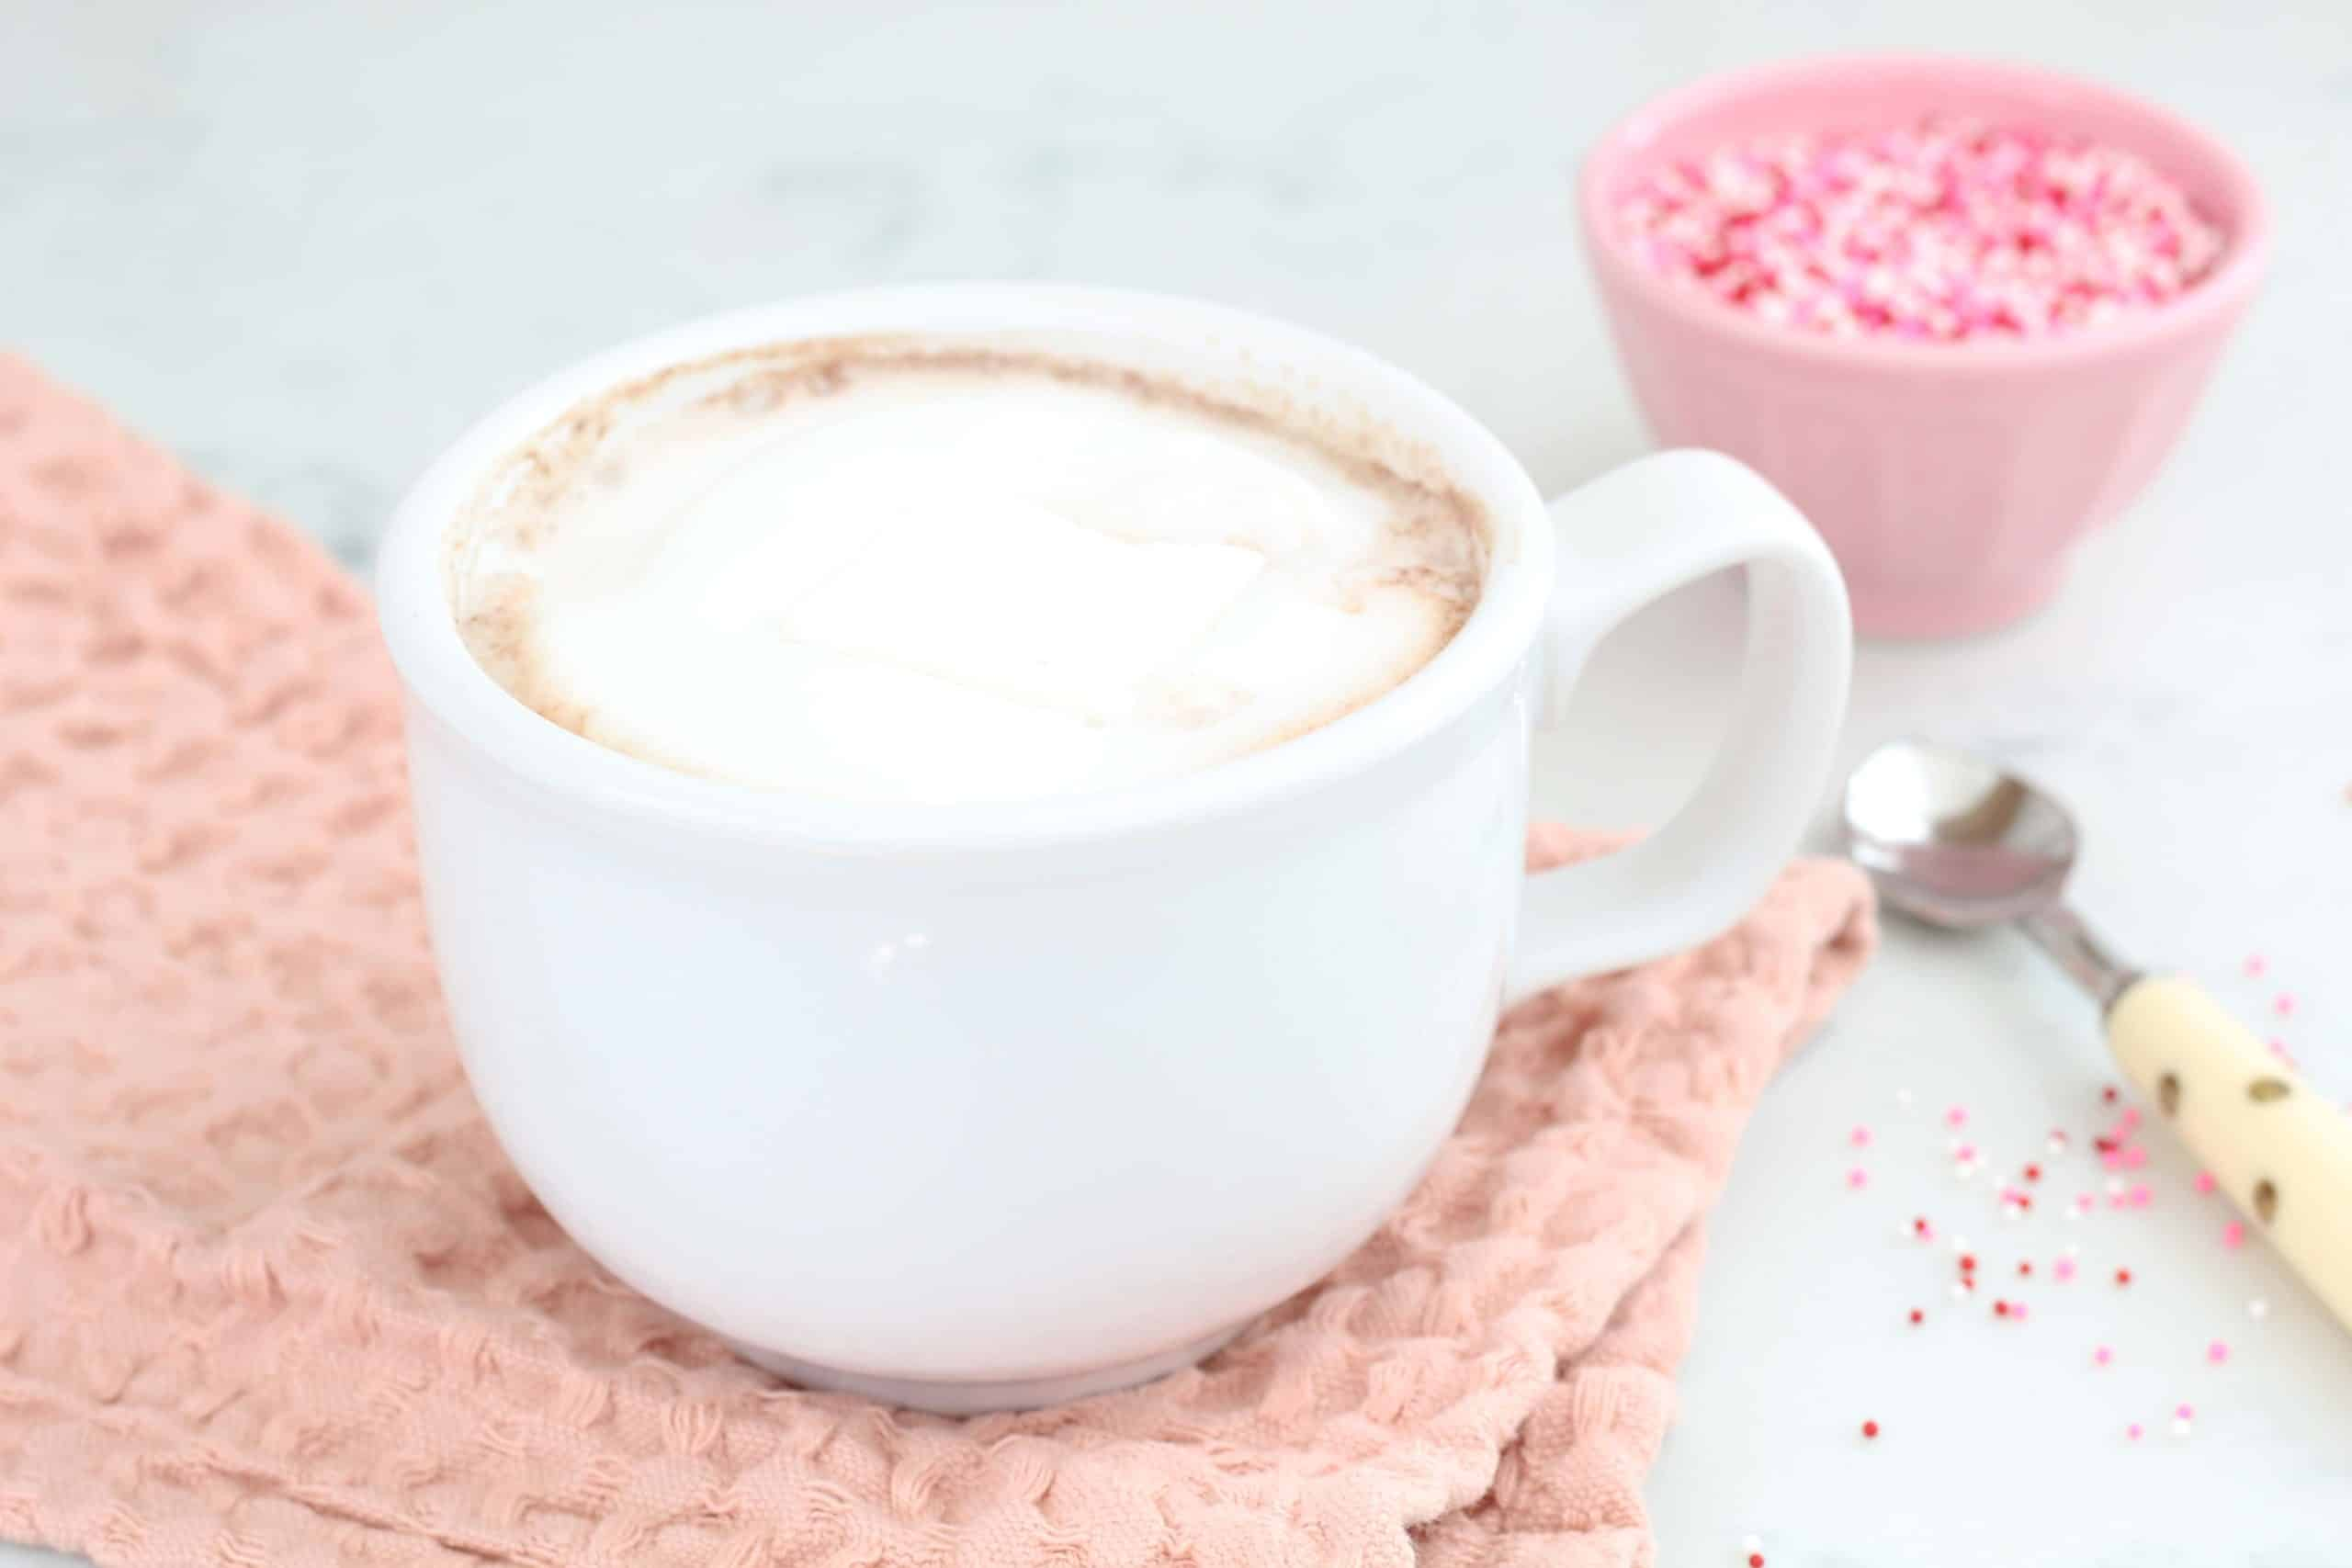 hot chocolate in white mug with pink sprinkles